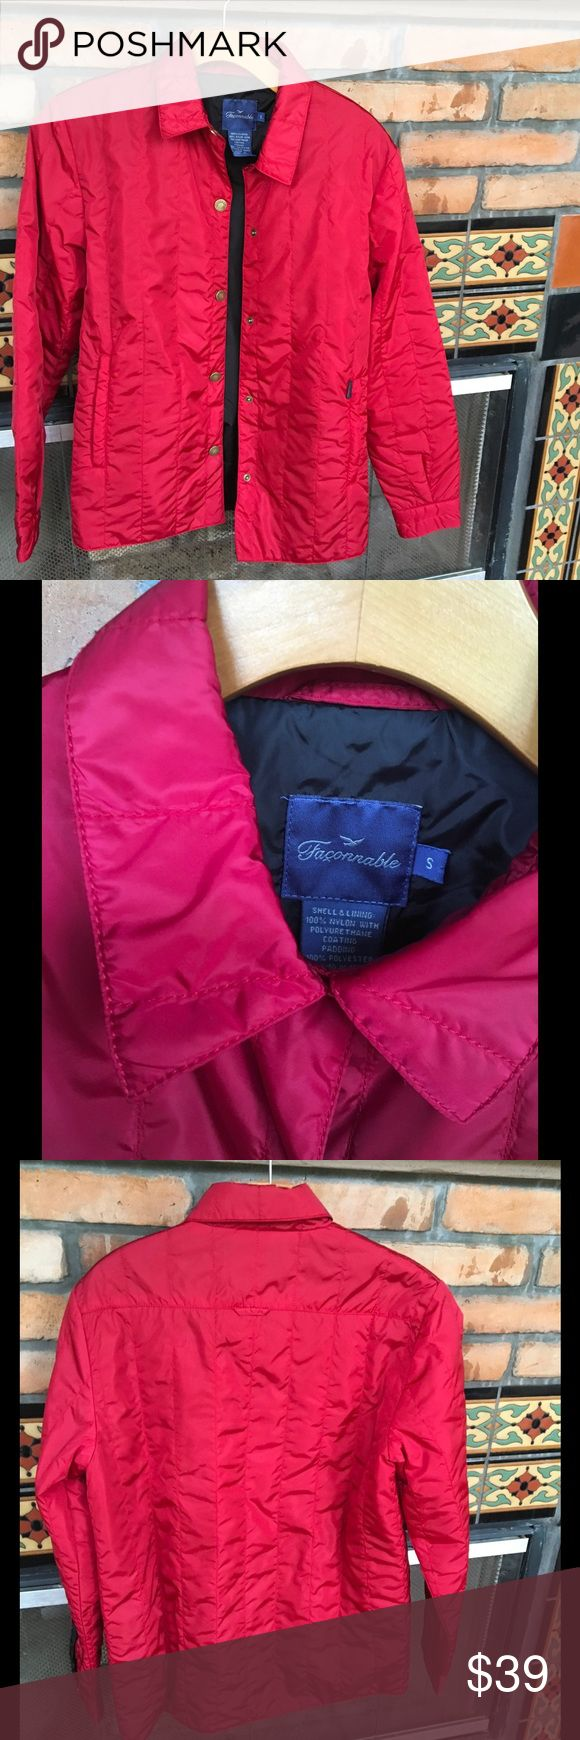 GORGEOUS DEEP RED FACONNABLE BARN COAT ALMOST NEW GORGEOUS RED QUILTED WATER RESISTANT COAT BY FAMED FRENCH DESIGNER FACONNABLE. faconnable Jackets & Coats Utility Jackets